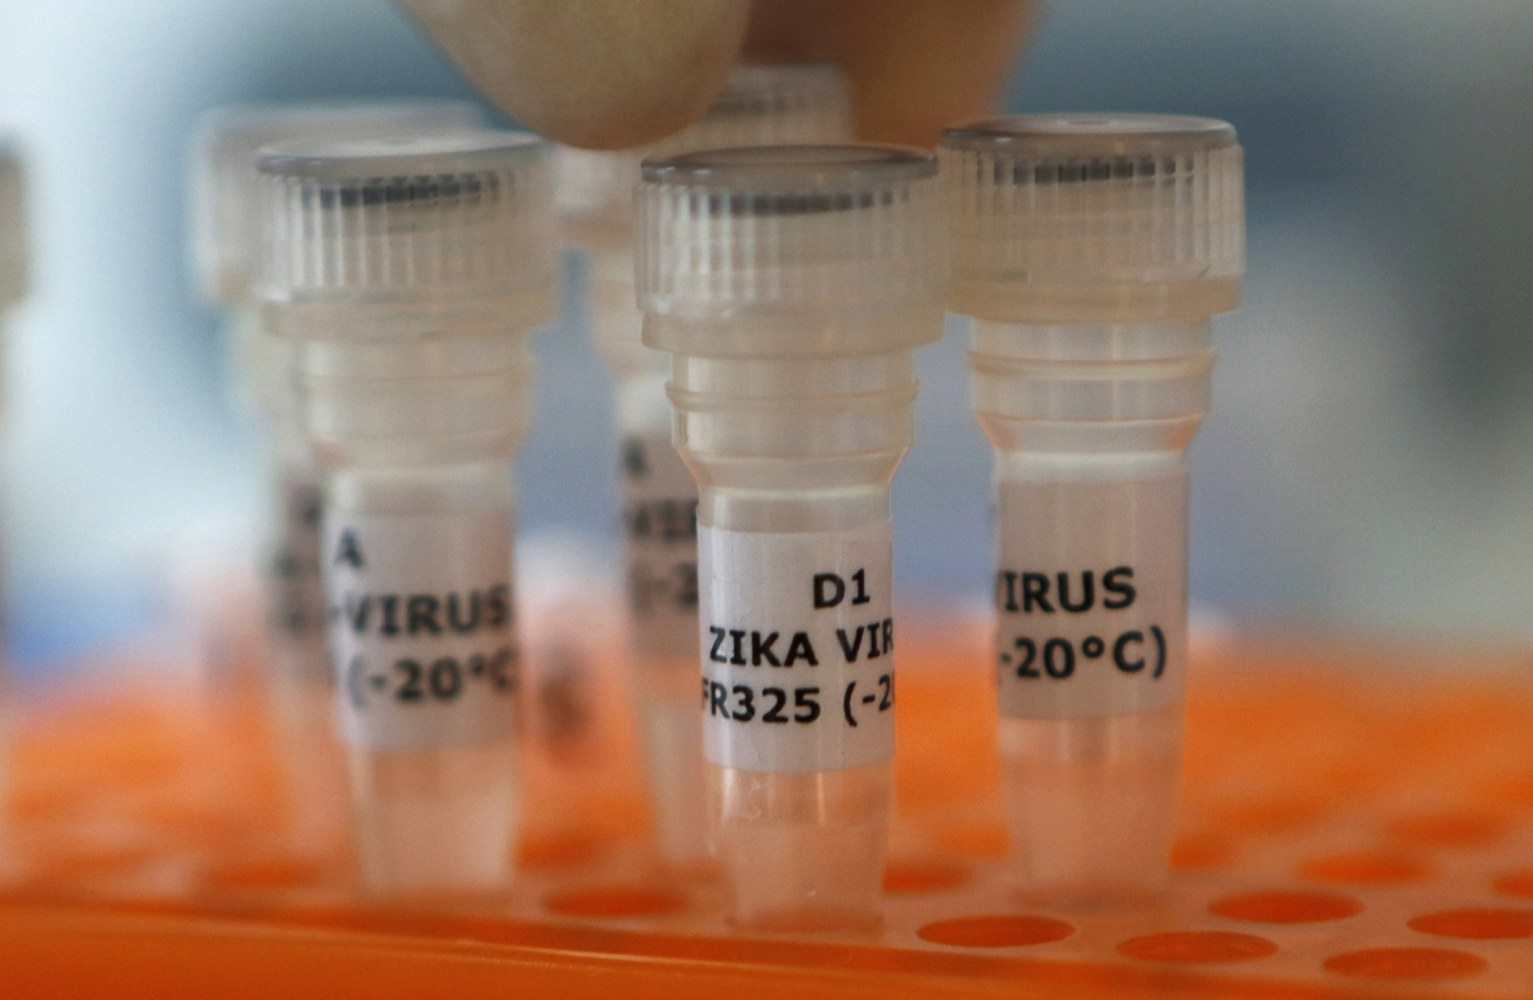 New Concerns Arise about Zika Virus